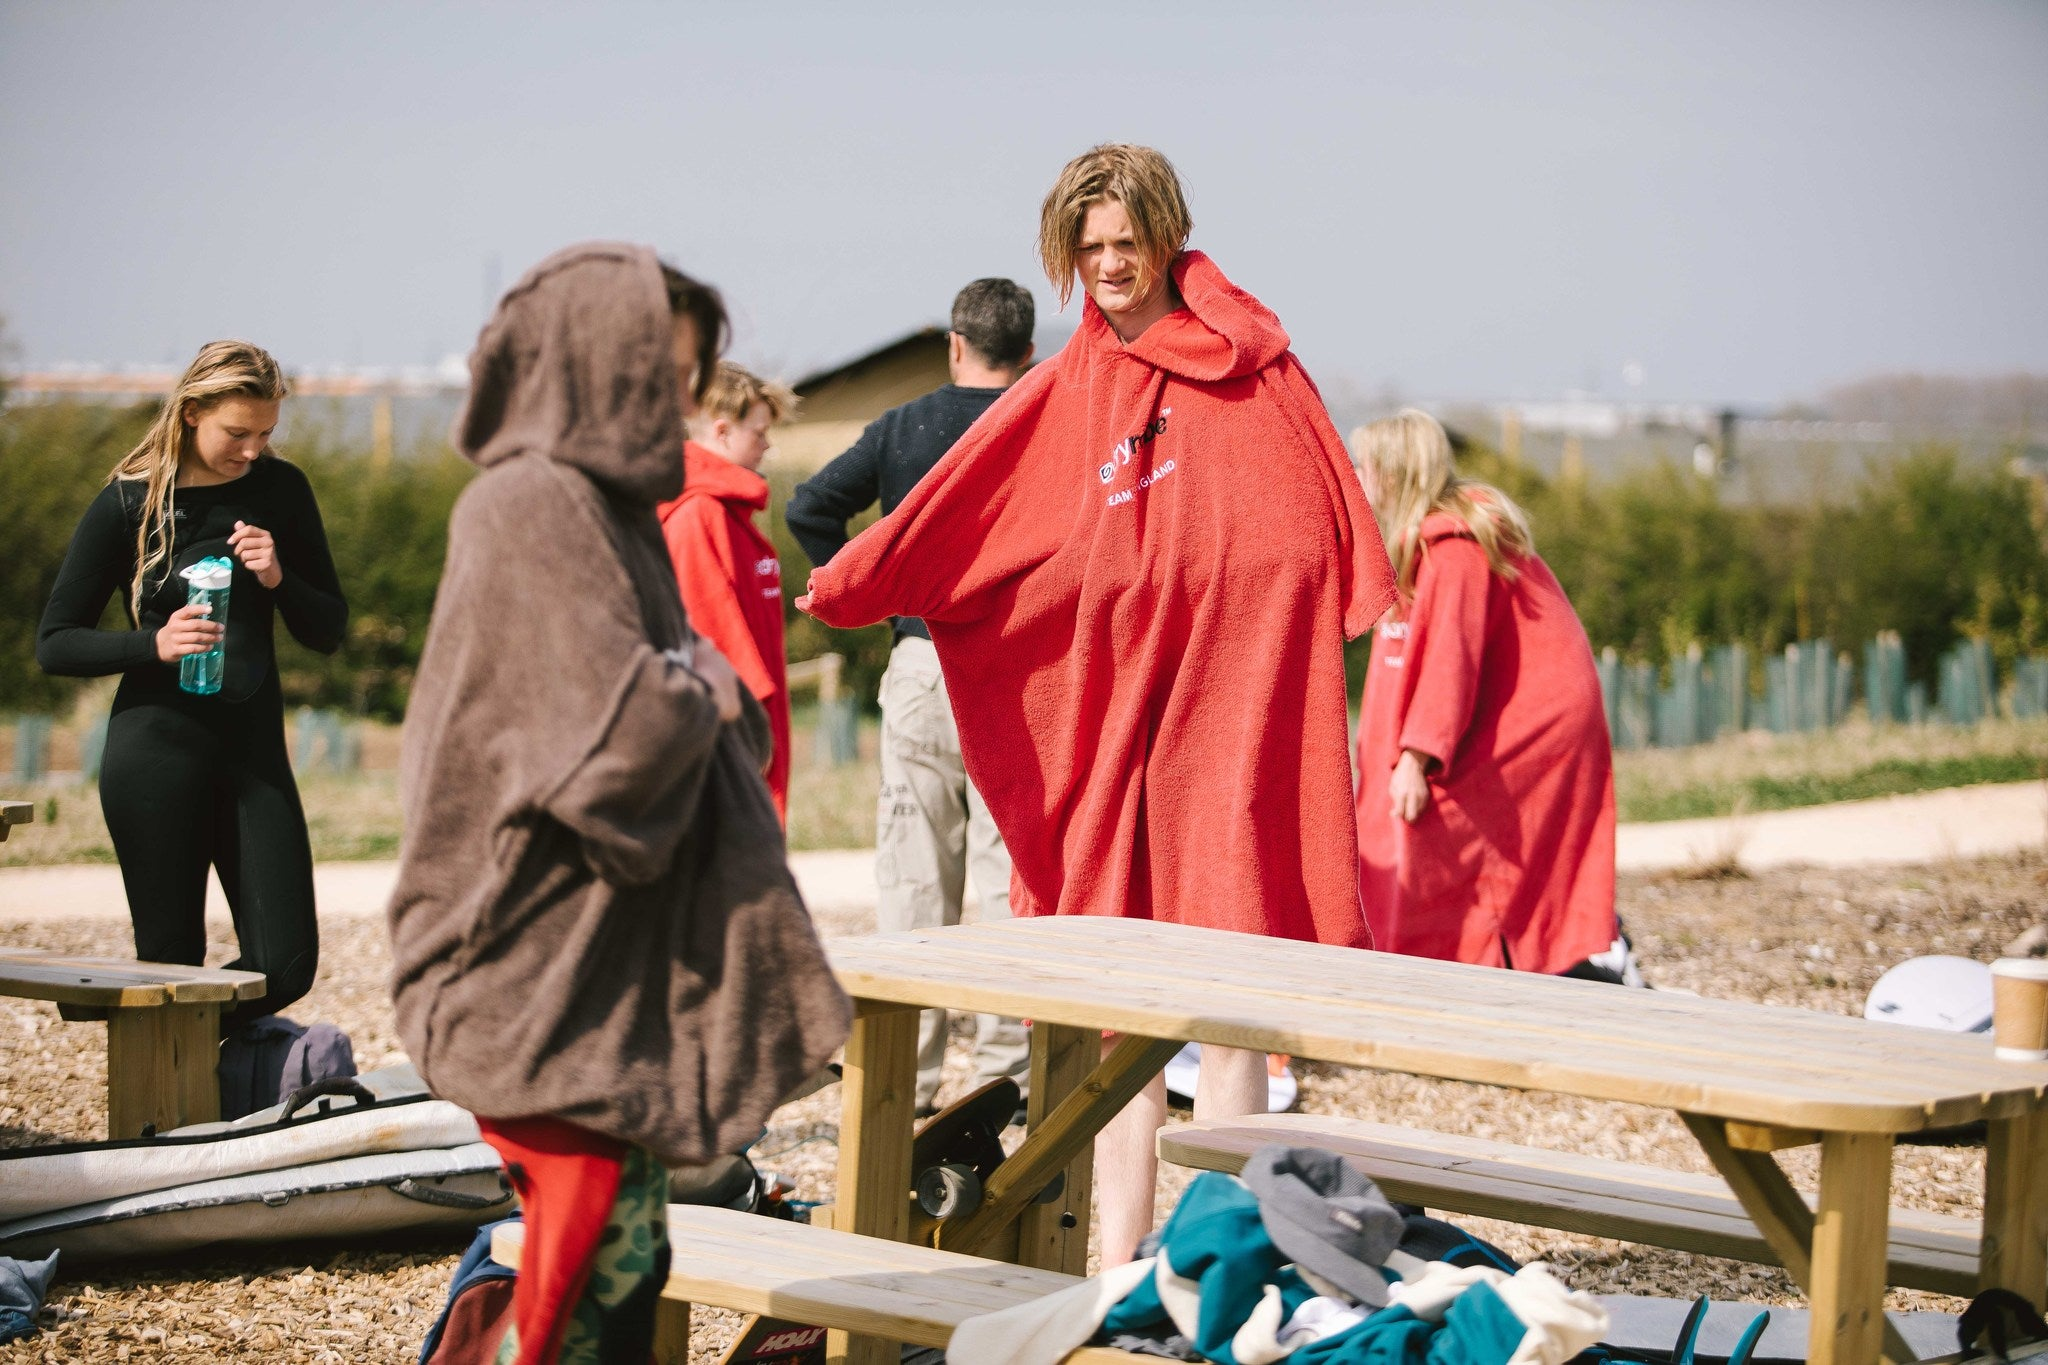 Team England Junior Squad members getting changed in Towel dryrobes